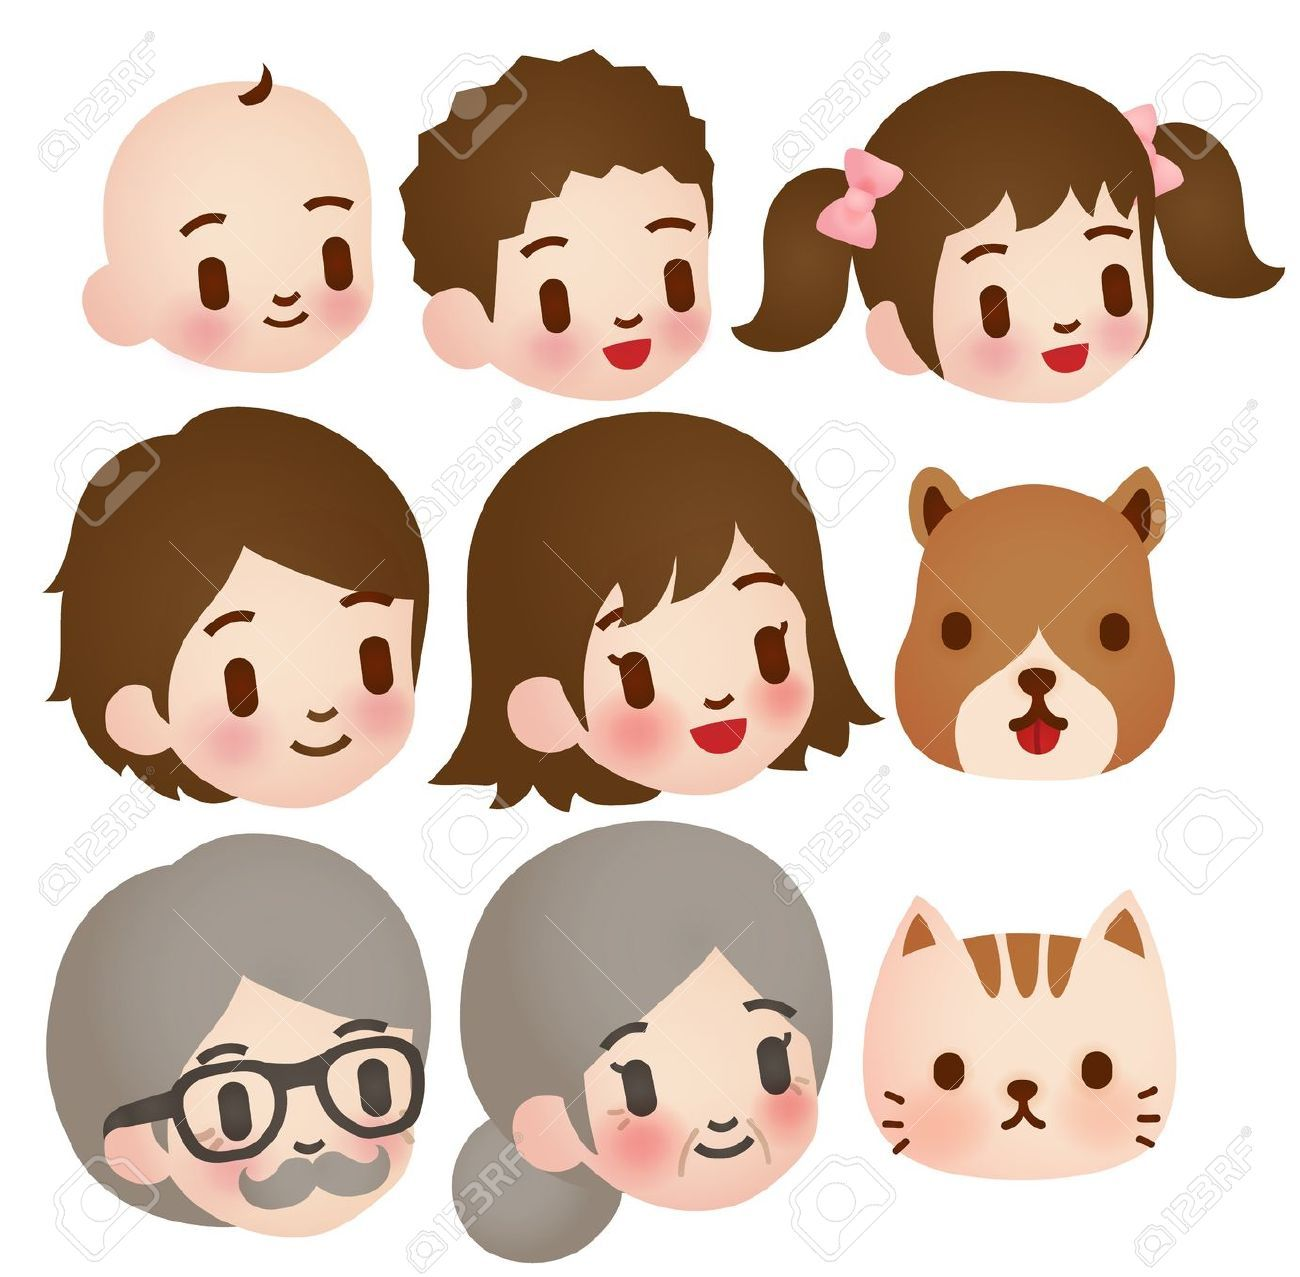 Cute Character Design Illustrator : Cute character face family illustration google search